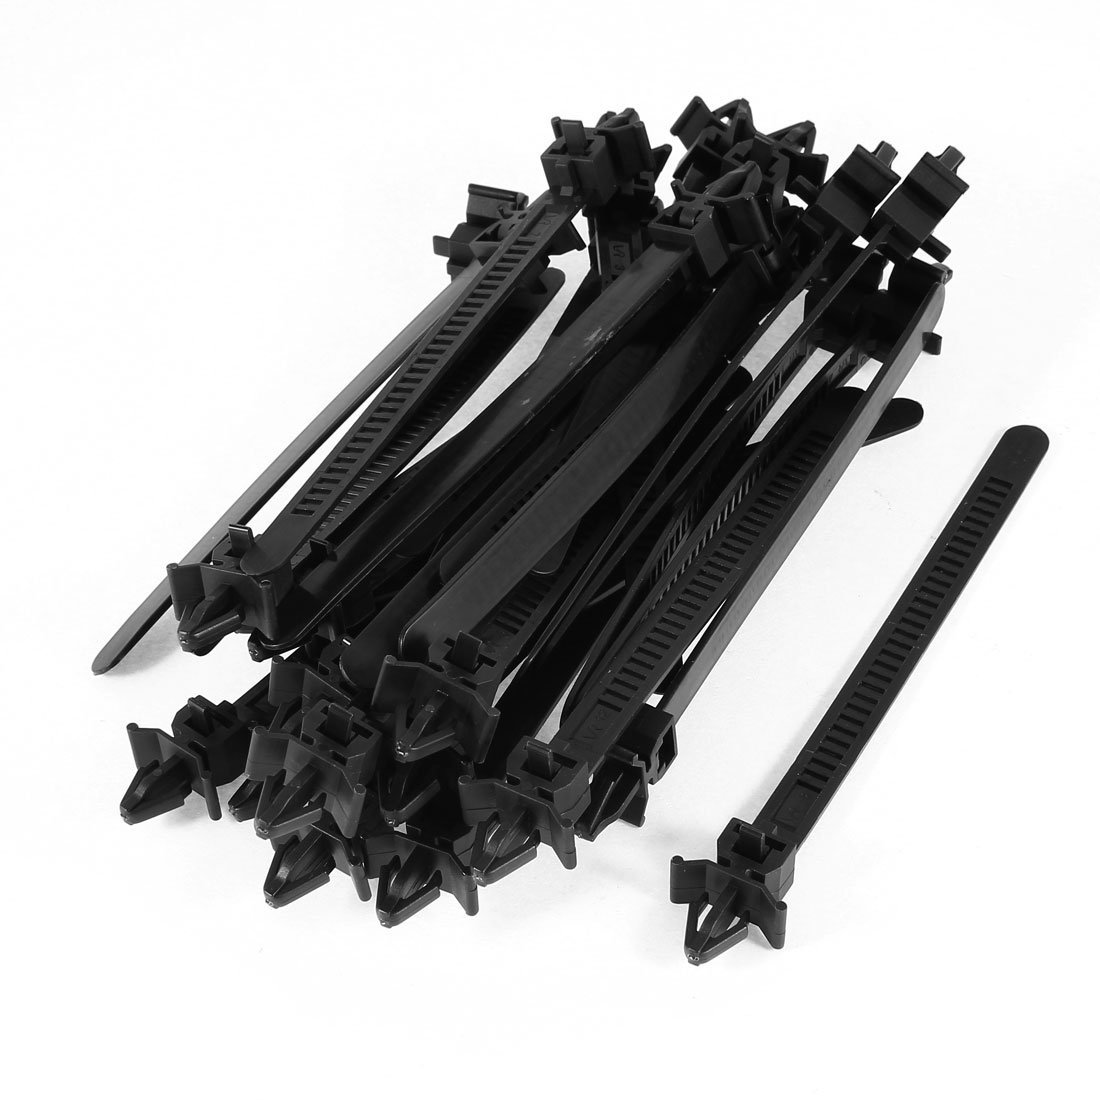 Uxcell Releasable Arrowhead Push Mount Cable Ties 124mm Long 30 Pcs Black